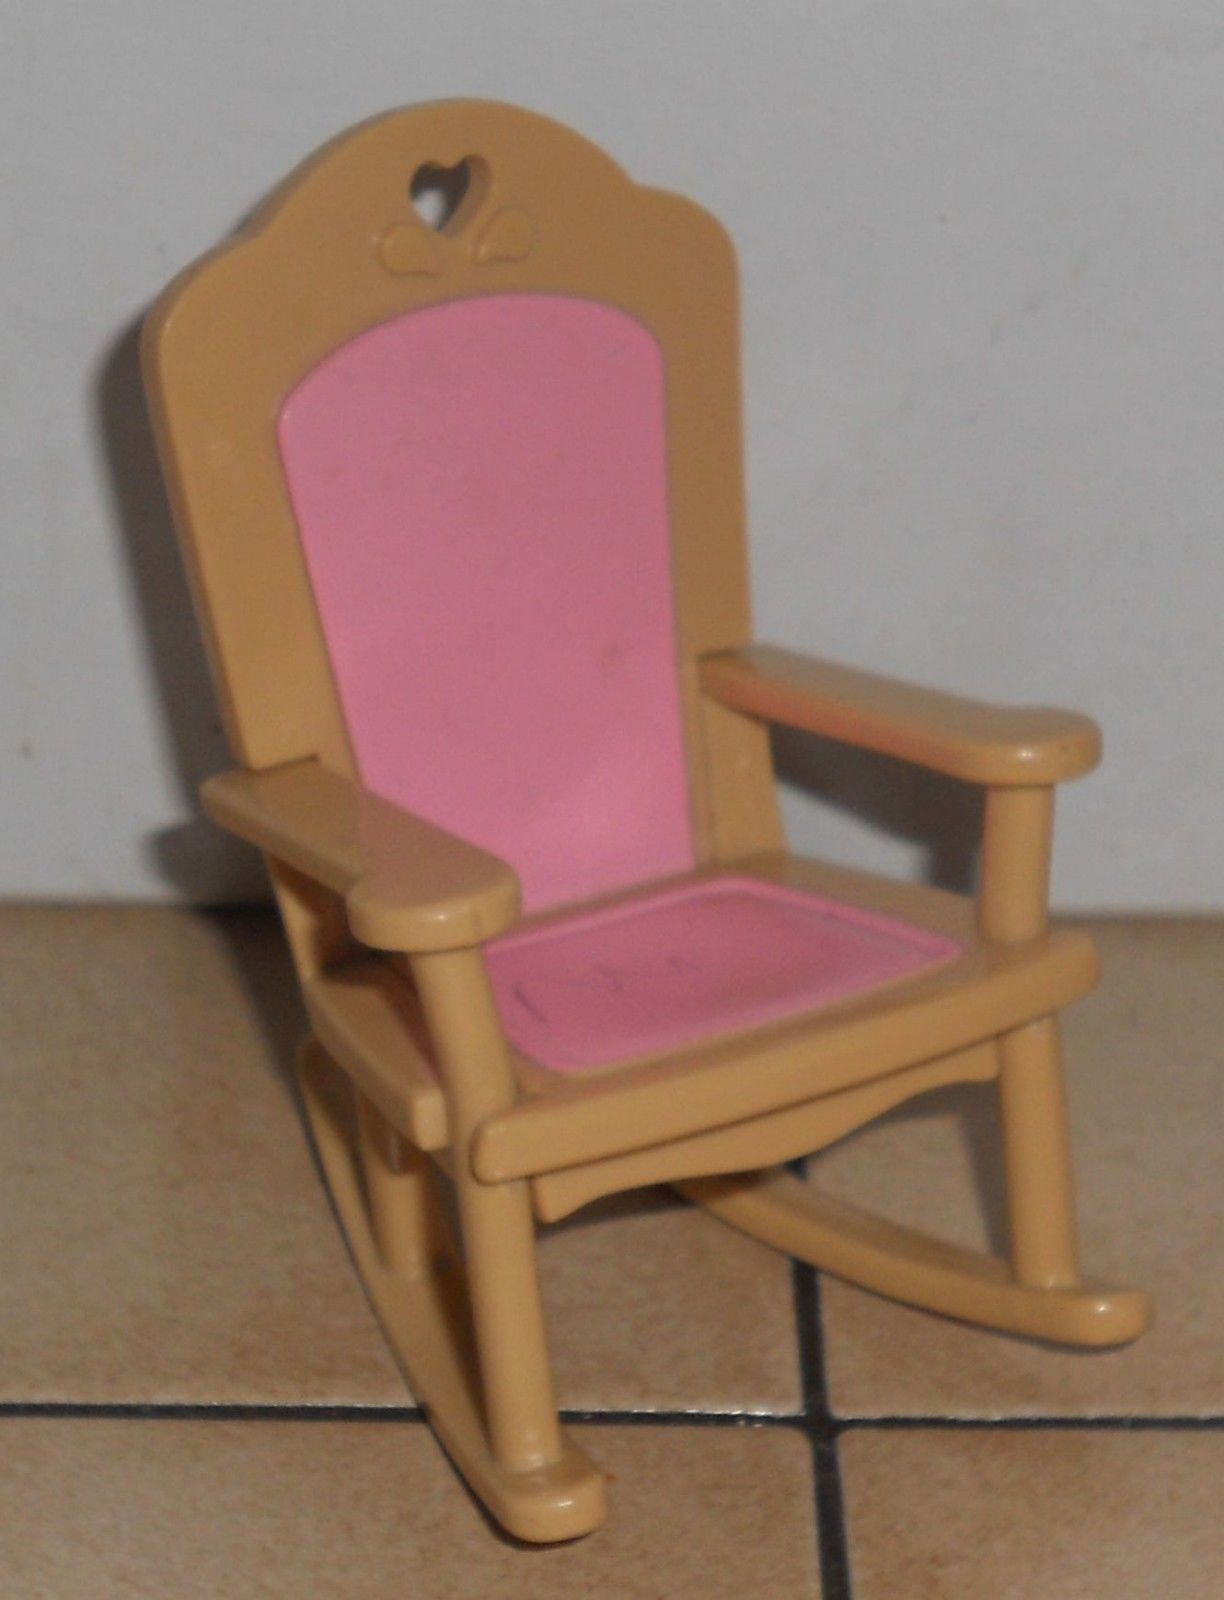 Fisher Price Doll House Rocking Chair and 50 similar items